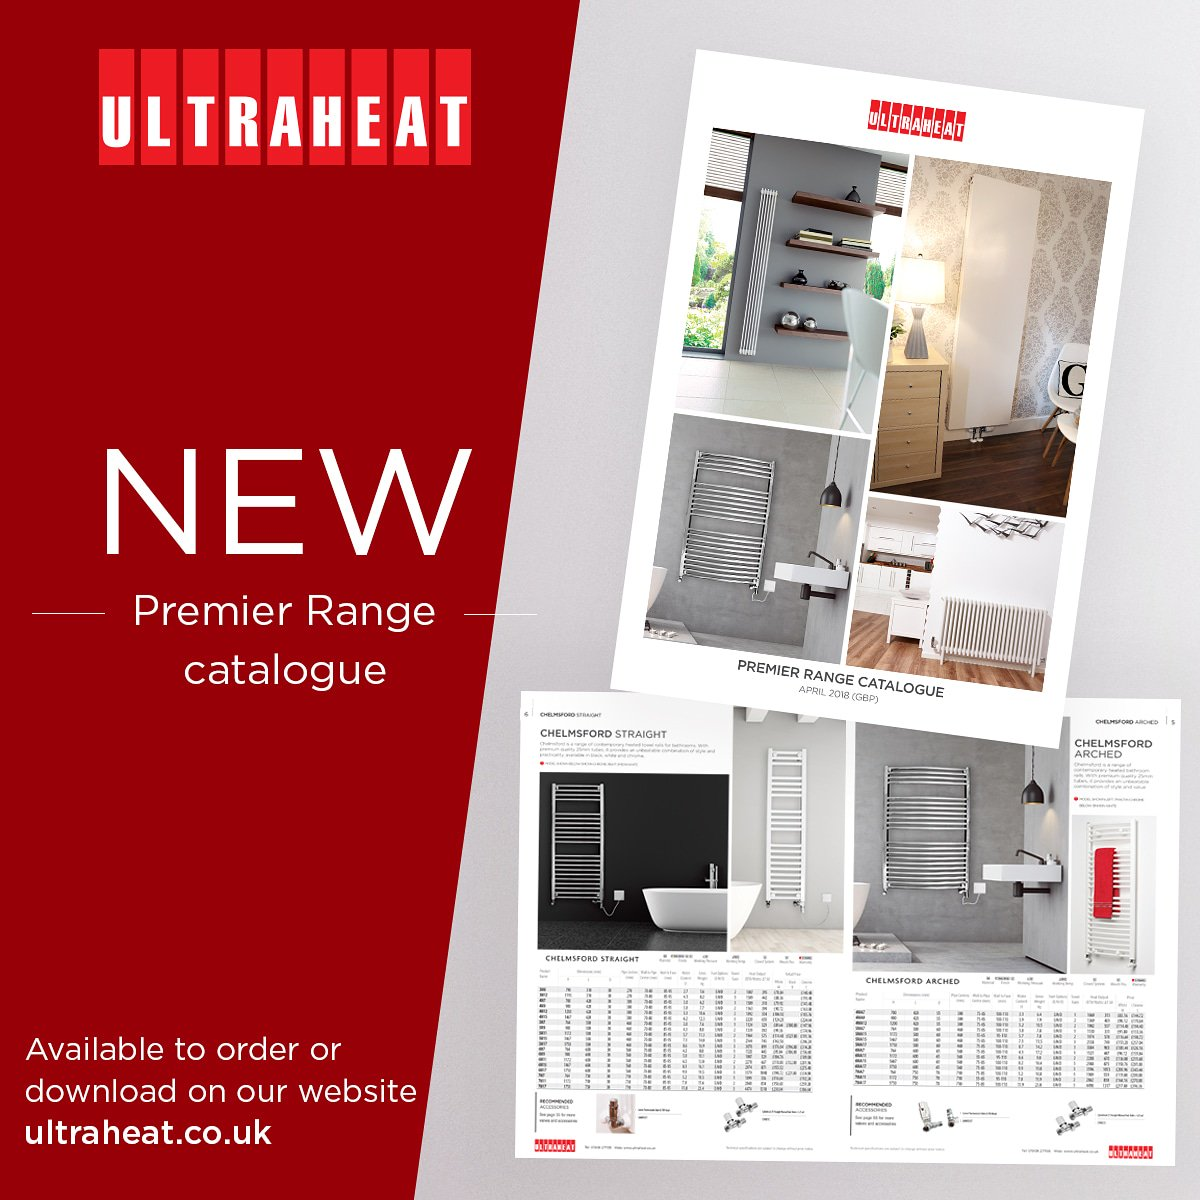 Our new Ultraheat Premier Catalogue is now available for order or  download on our website: http://www. ultraheat.co.uk/ultraheat-cata logue-2018.pdf &nbsp; …   #ultraheat #catalogue #order #premier #heating #home #homedesign #interior #interiordesign #design #instastyle #stylish #contemporary #pitacs #towerail<br>http://pic.twitter.com/hixHq7iXe2